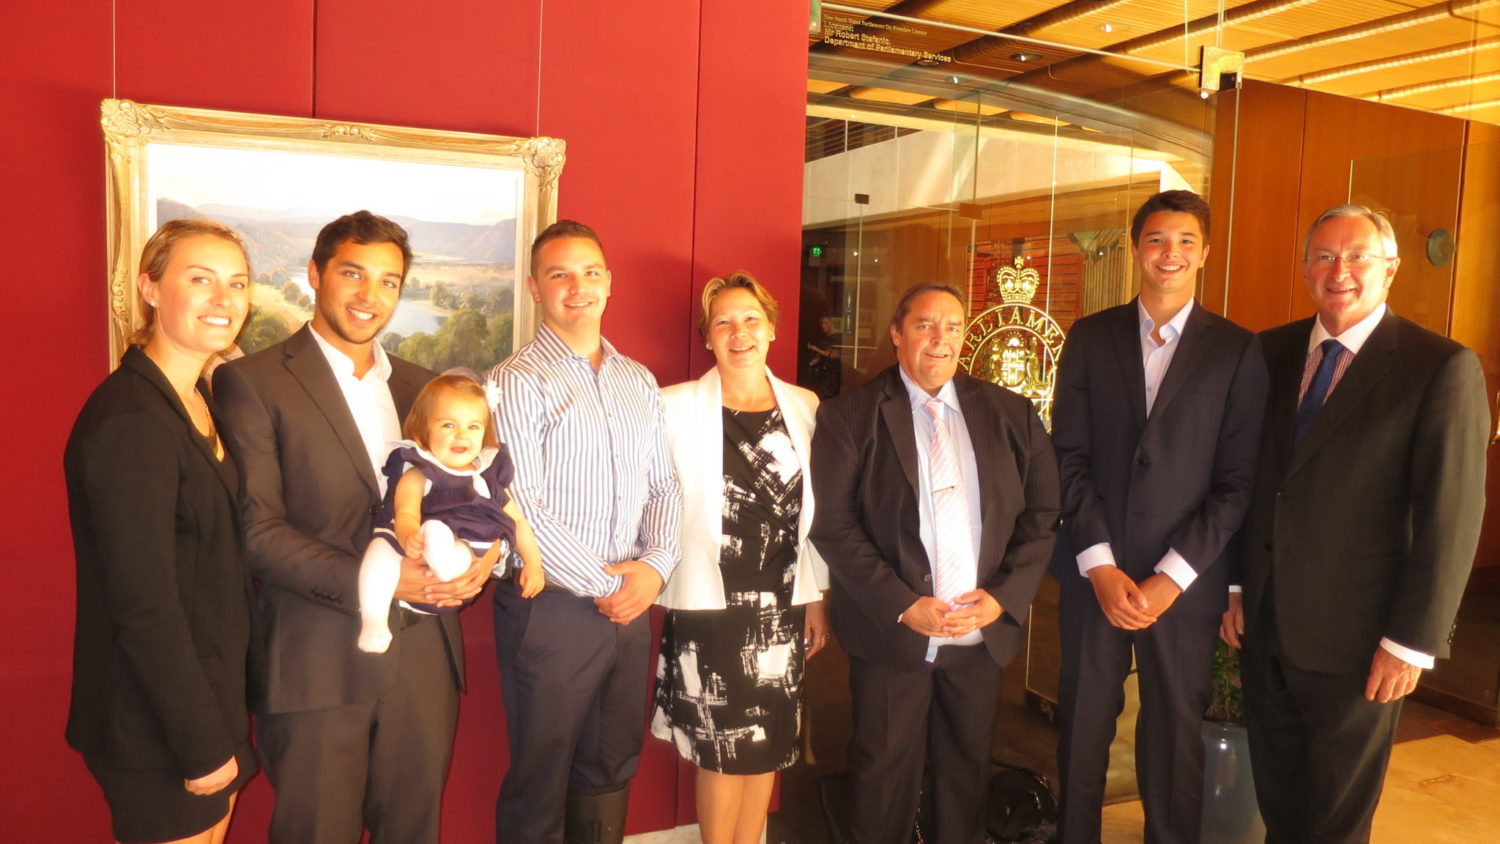 Liam Knight & his family visit Parliament House